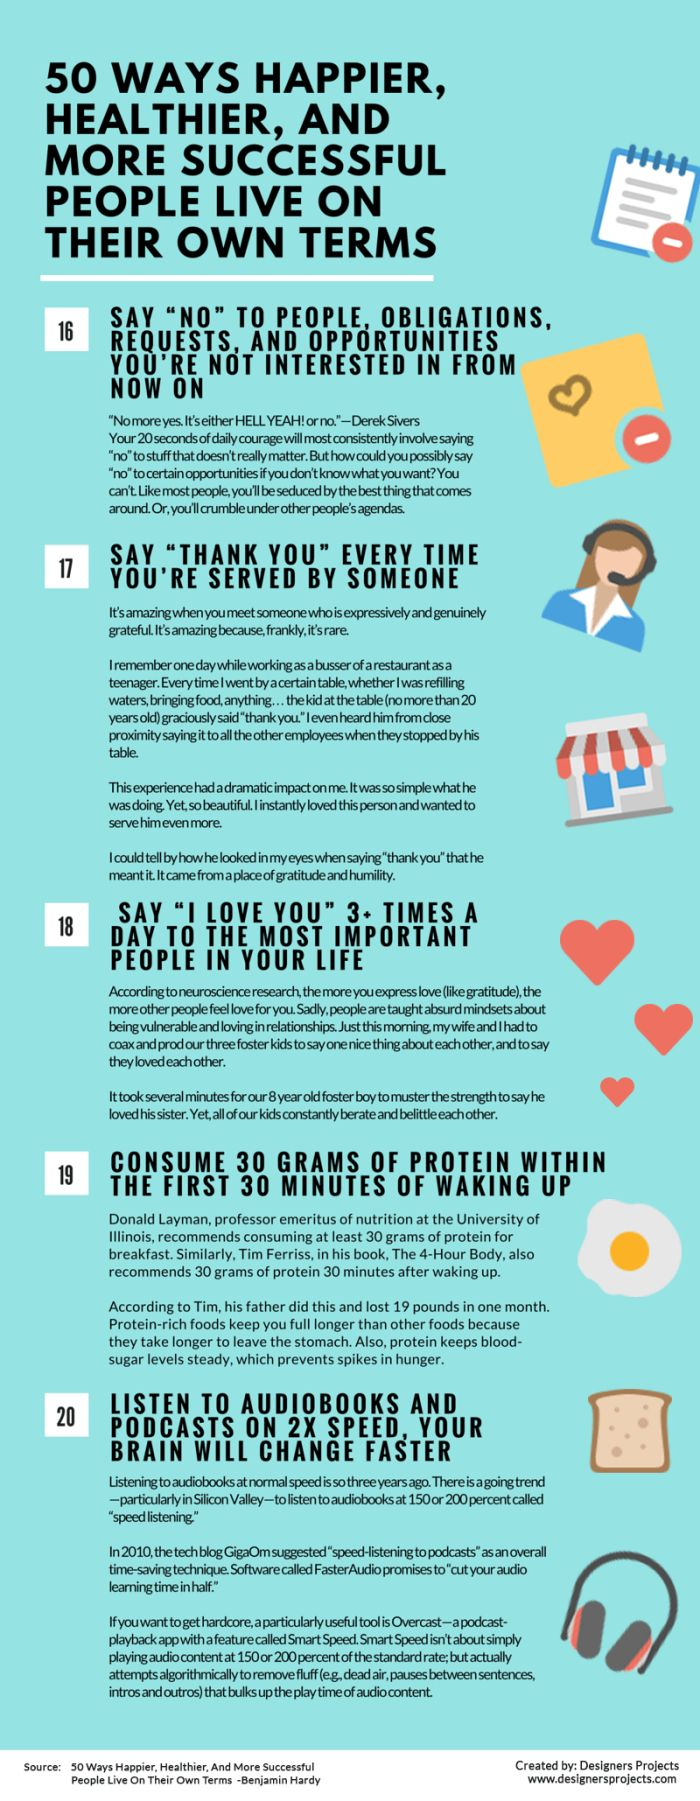 50 Different Ways That Happy And Successful People Live On Their Own Terms (10 pics)